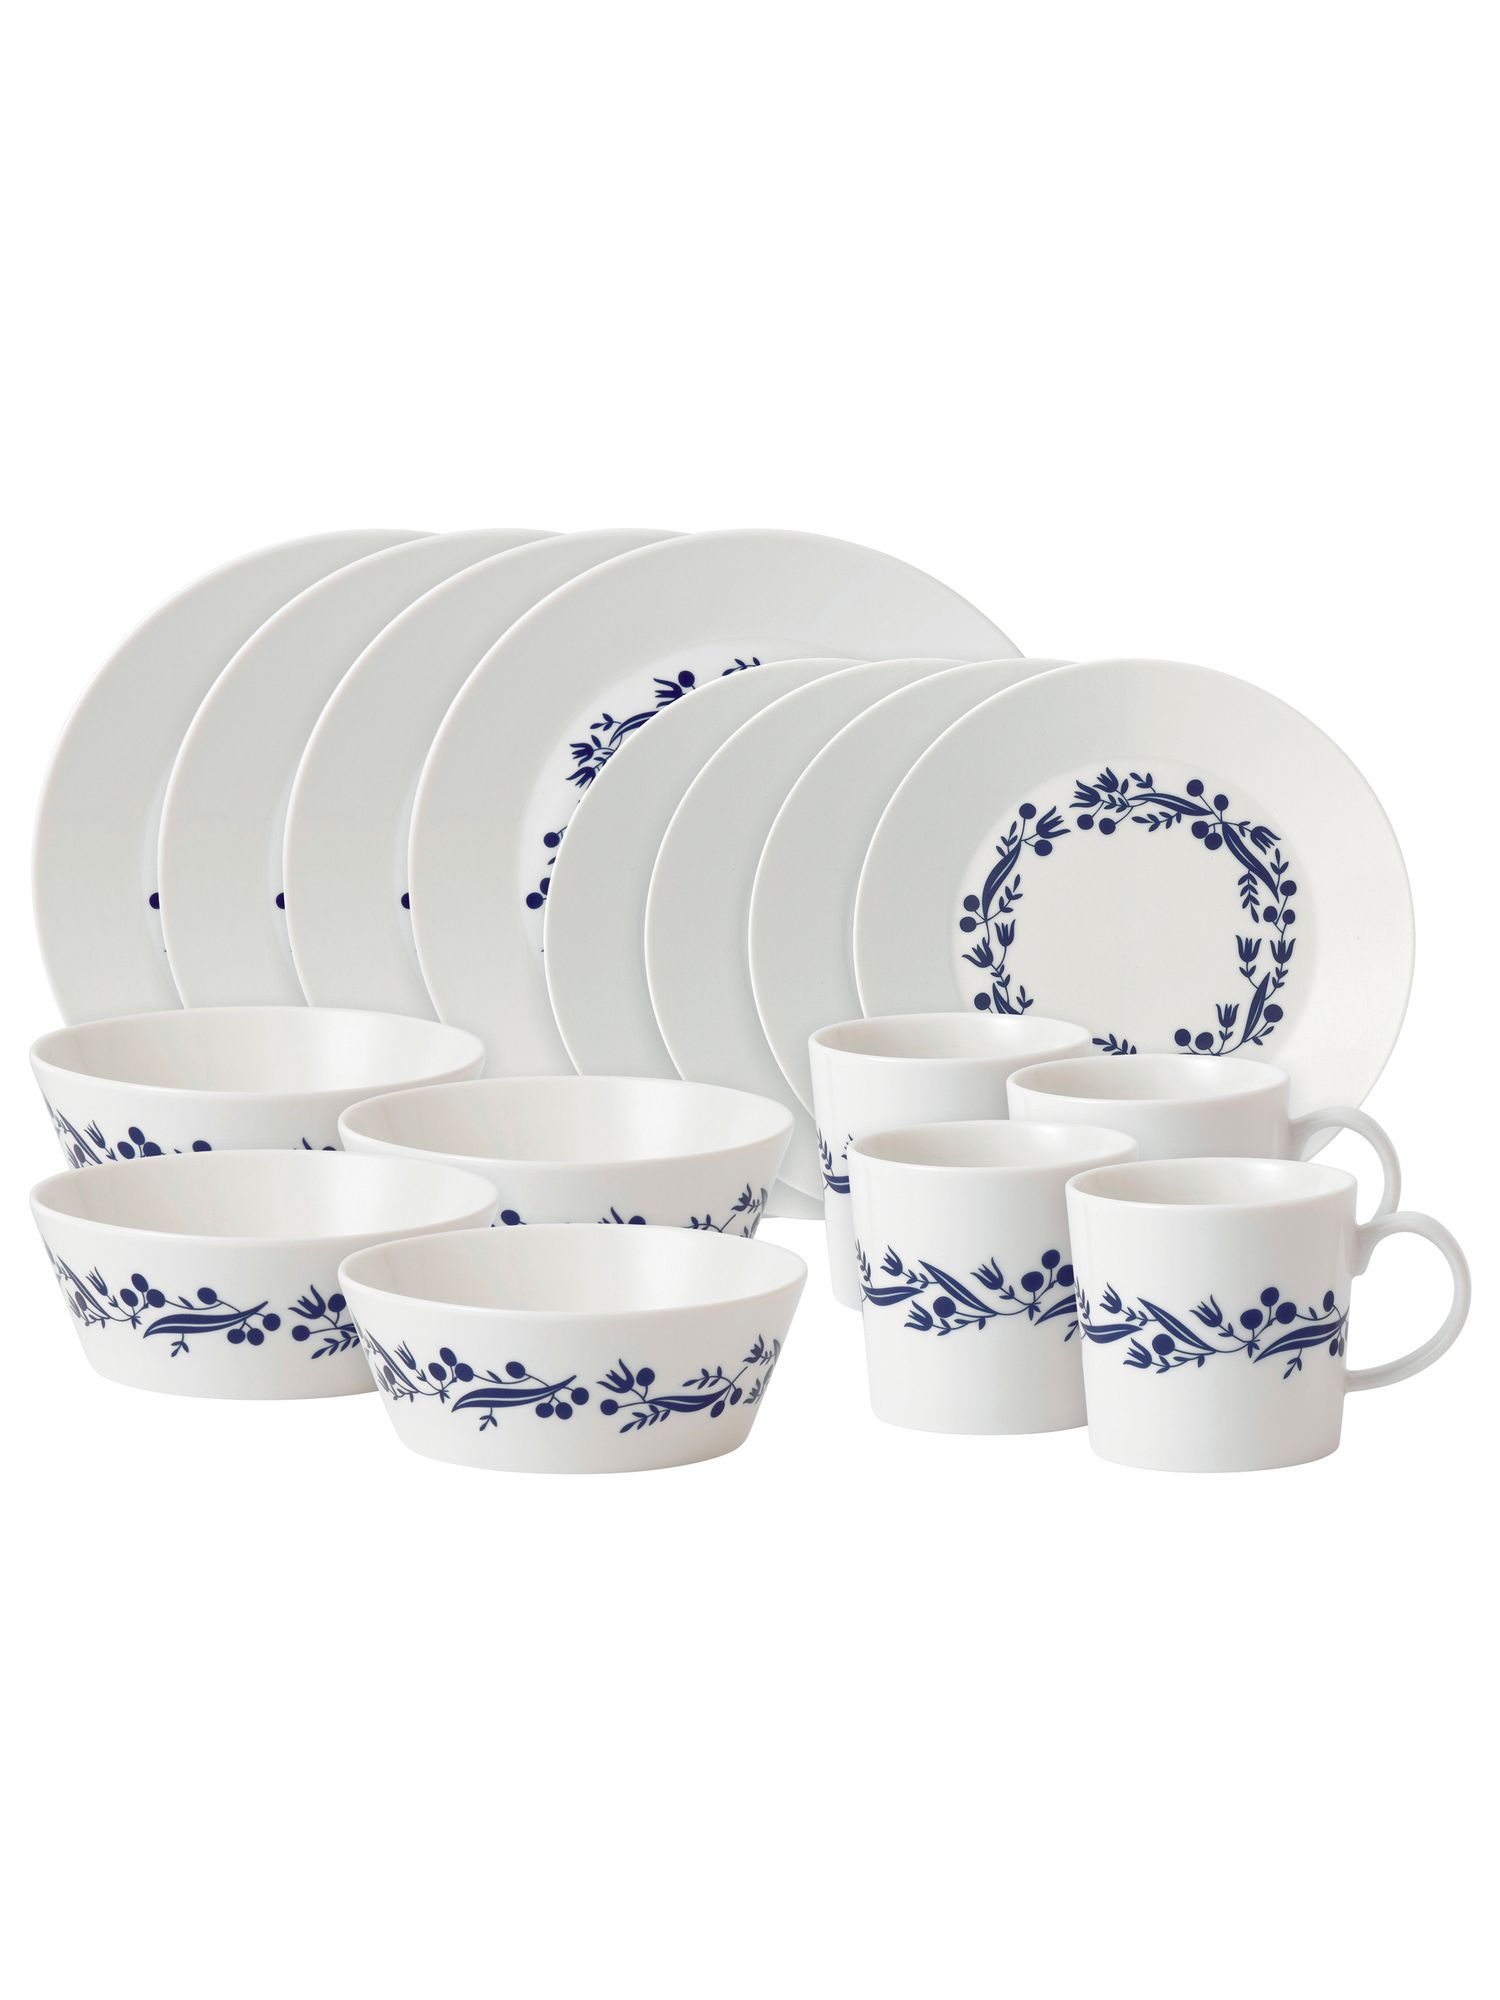 Fable garland 16 piece set